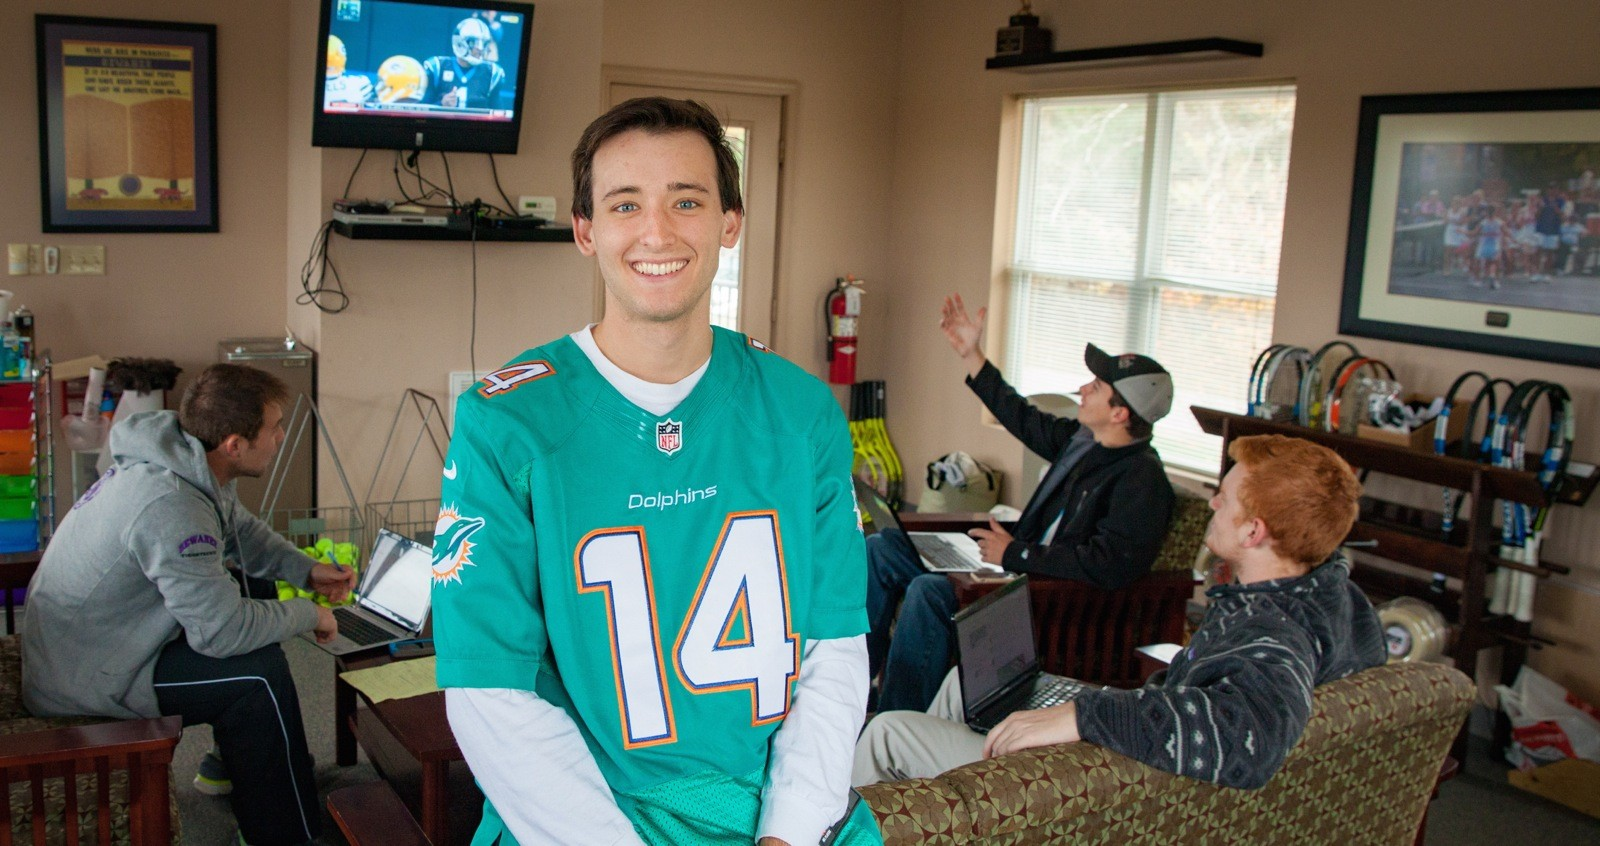 Game day: Every Sunday during the NFL season, Eric Roddy and friends gather for a day-long football binge.